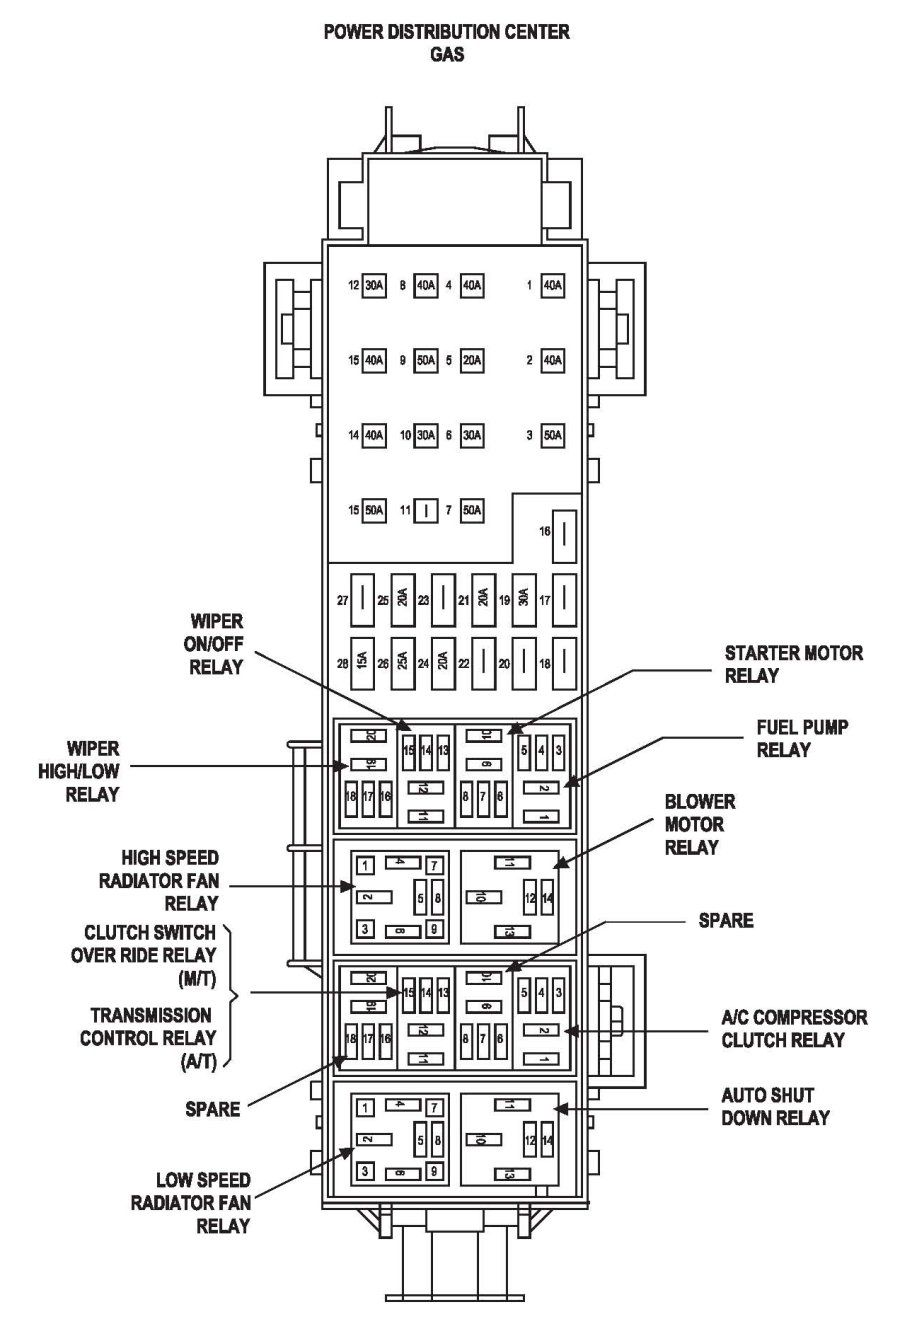 fuse box jeep liberty 2007 wiring diagram imgjeep liberty fuse box diagram image details jeep liberty [ 900 x 1336 Pixel ]